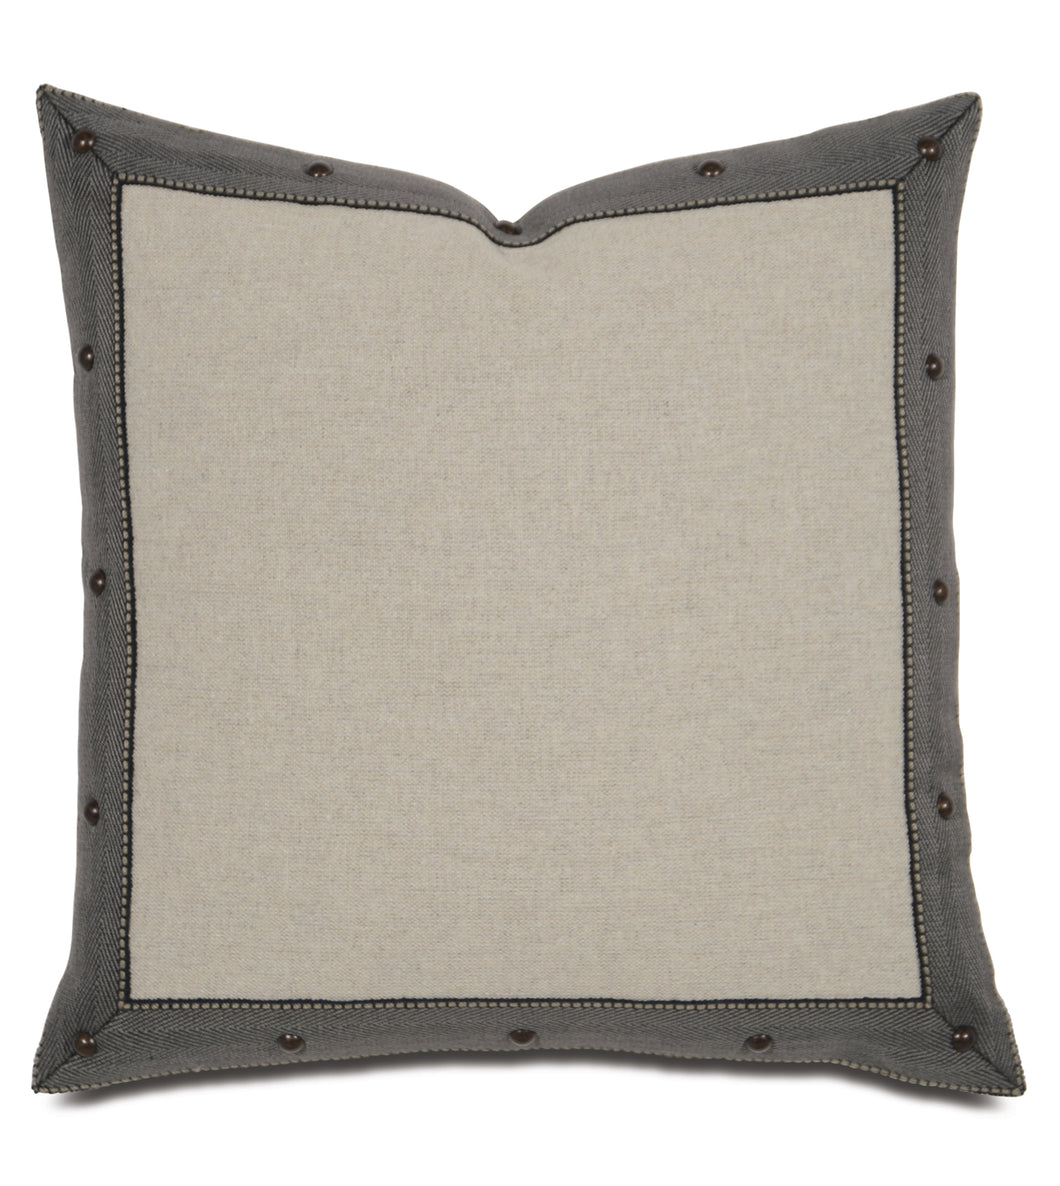 Warm Gray Studded Lodge Throw Pillow 18